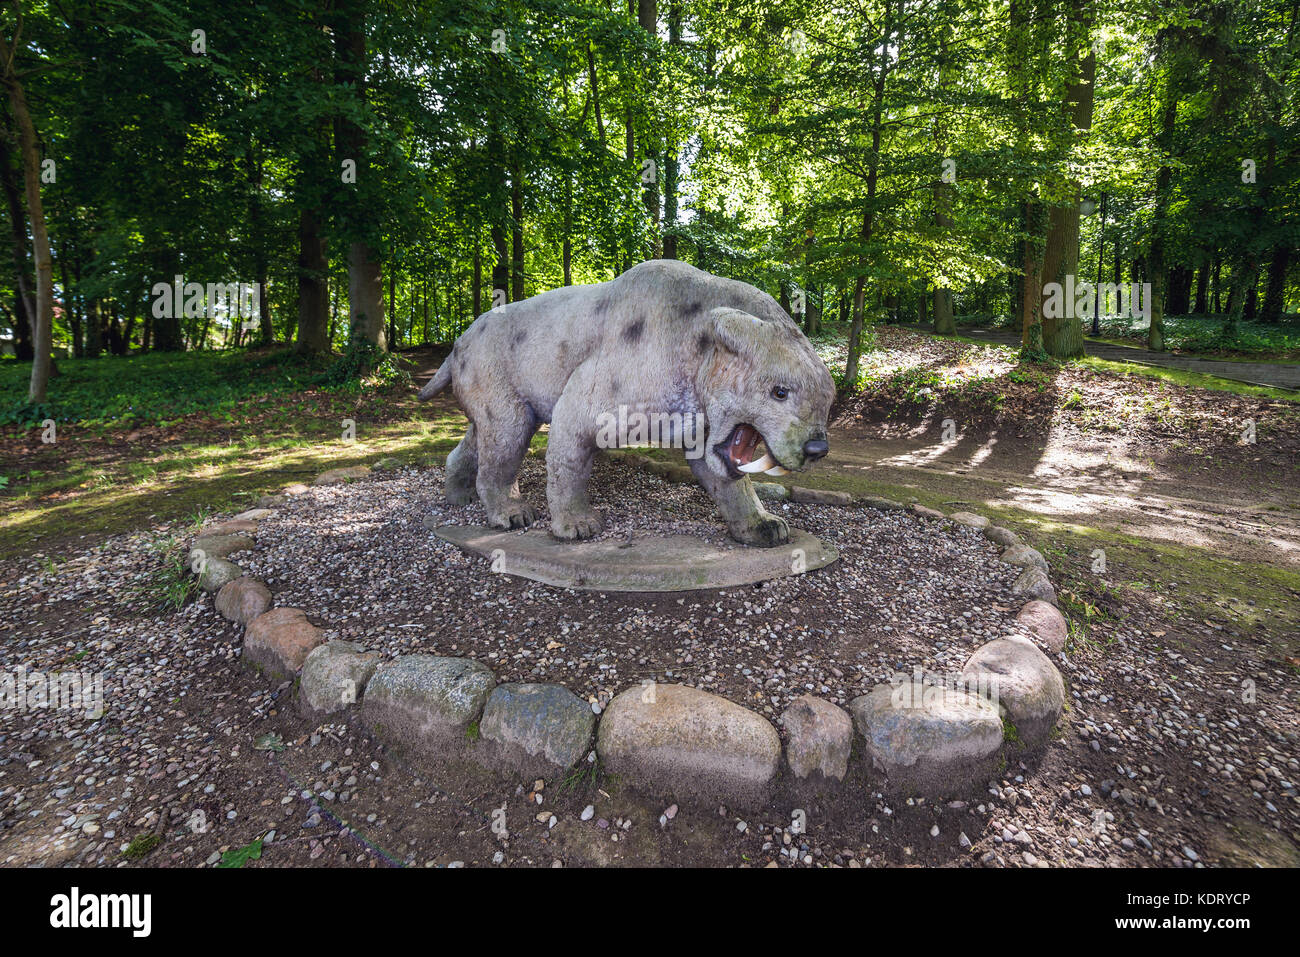 Model of extinct specie of Saber-toothed cat in geopark called 'Avenue of Pleistocene Stars' in Moryn town - Stock Image